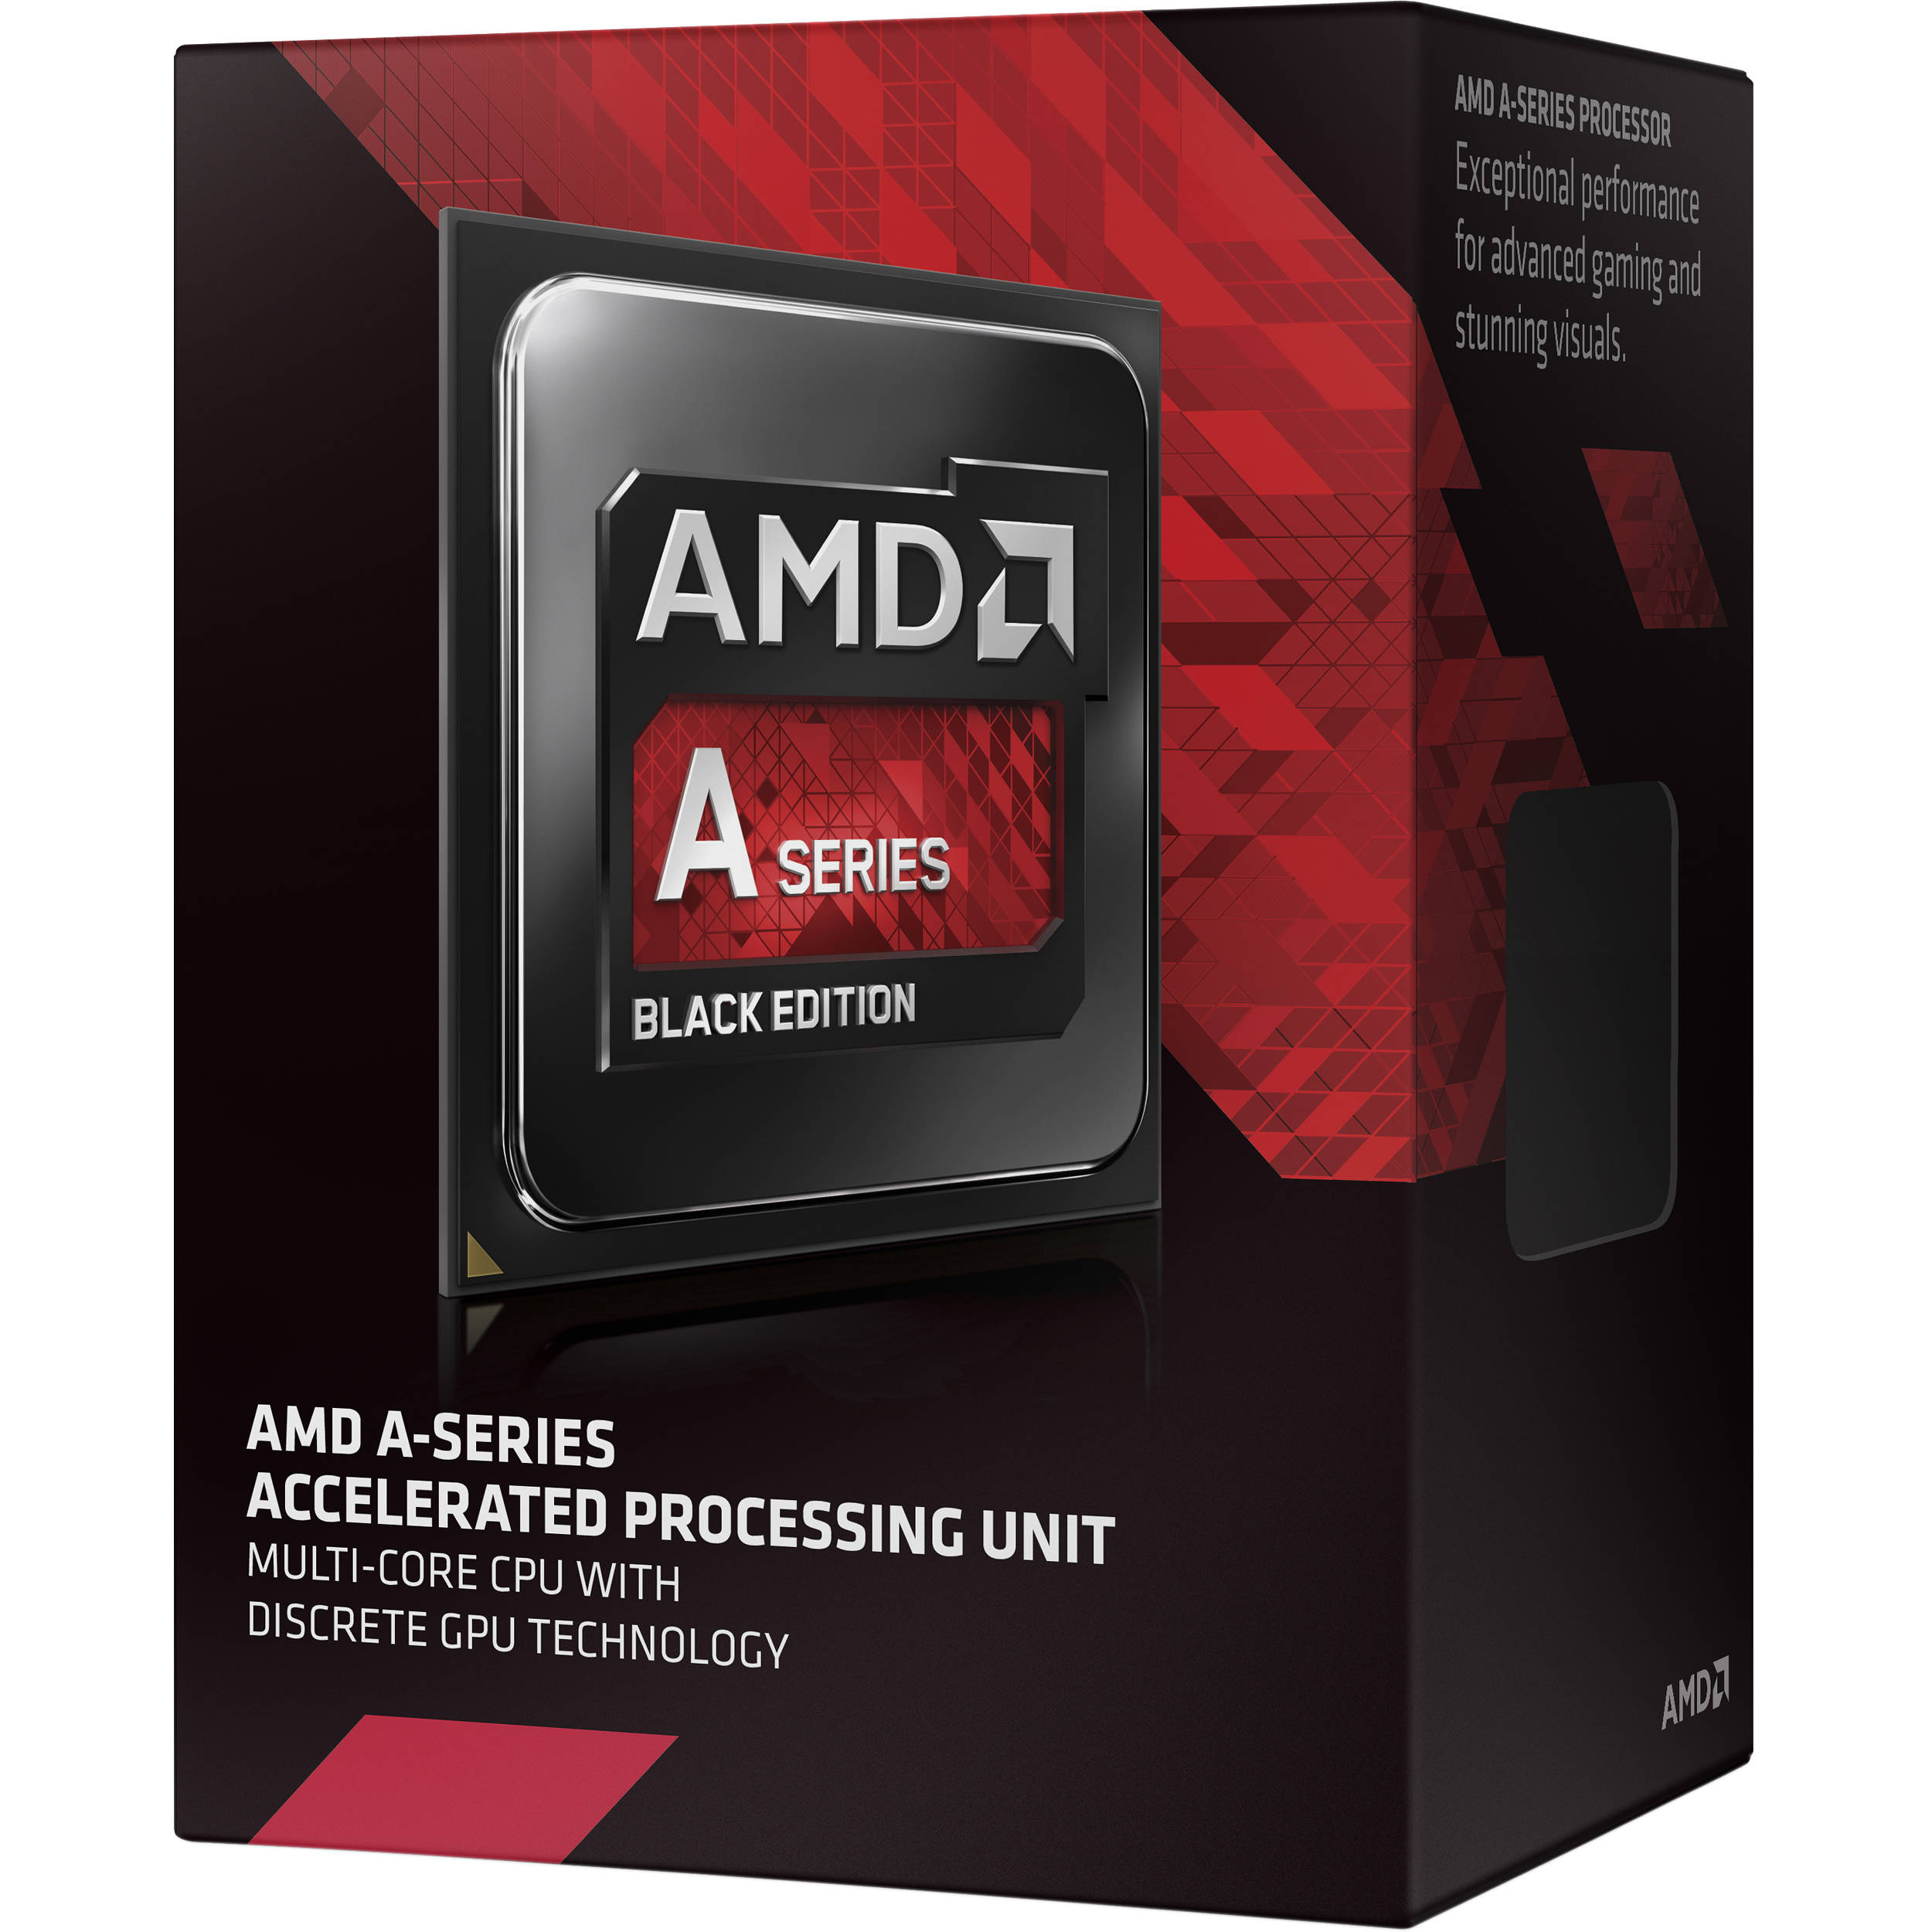 AMD A10-7870K Quad-Core Accelerated Processor with Radeon R7 Graphics